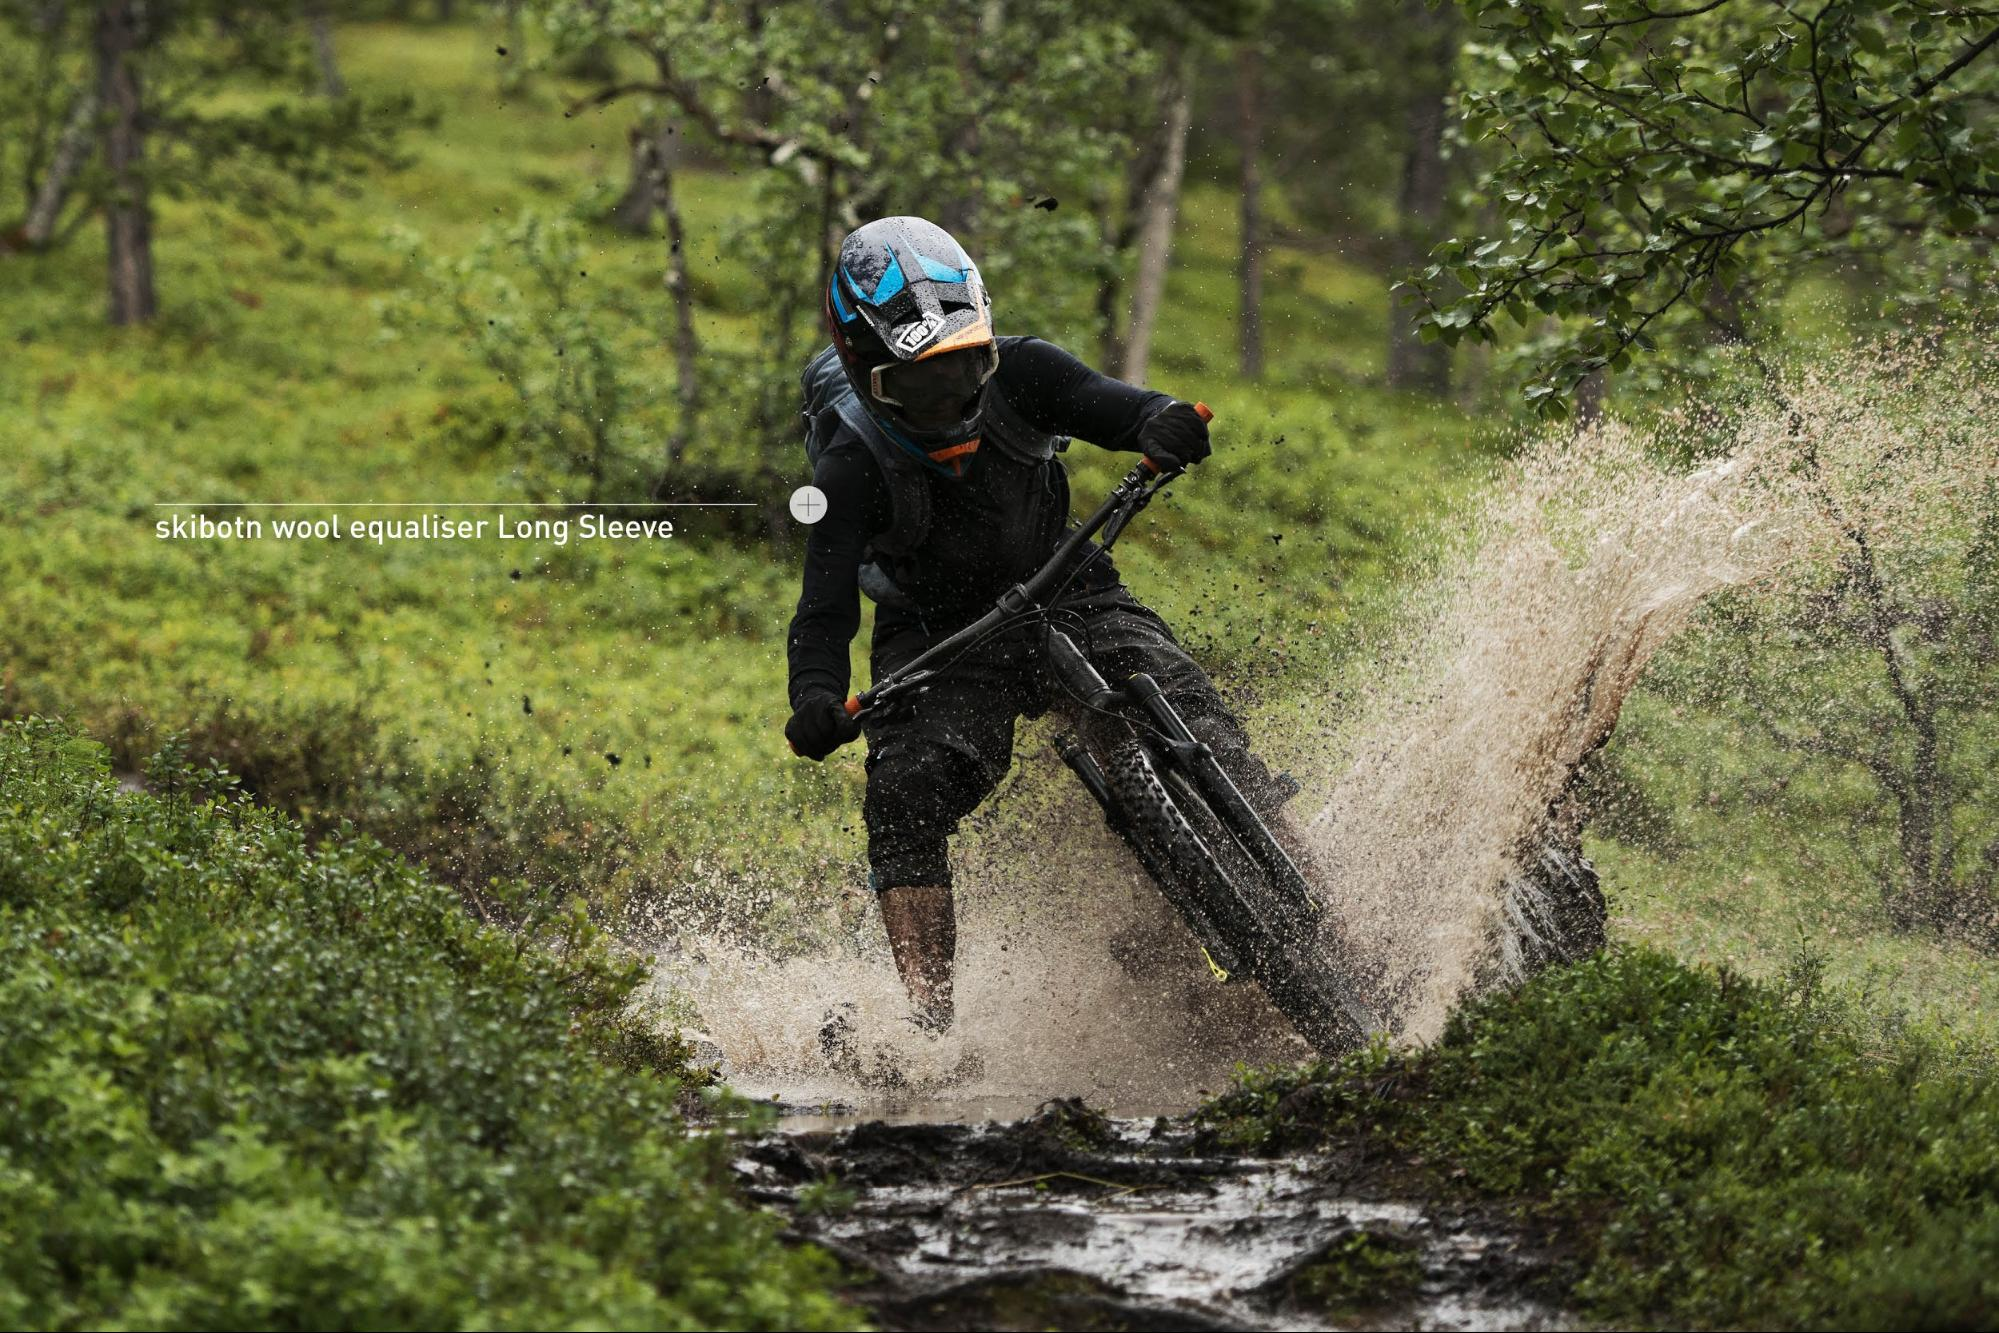 Mountain biker in a muddy turn wearing the skibotn equalizer Long Sleeve